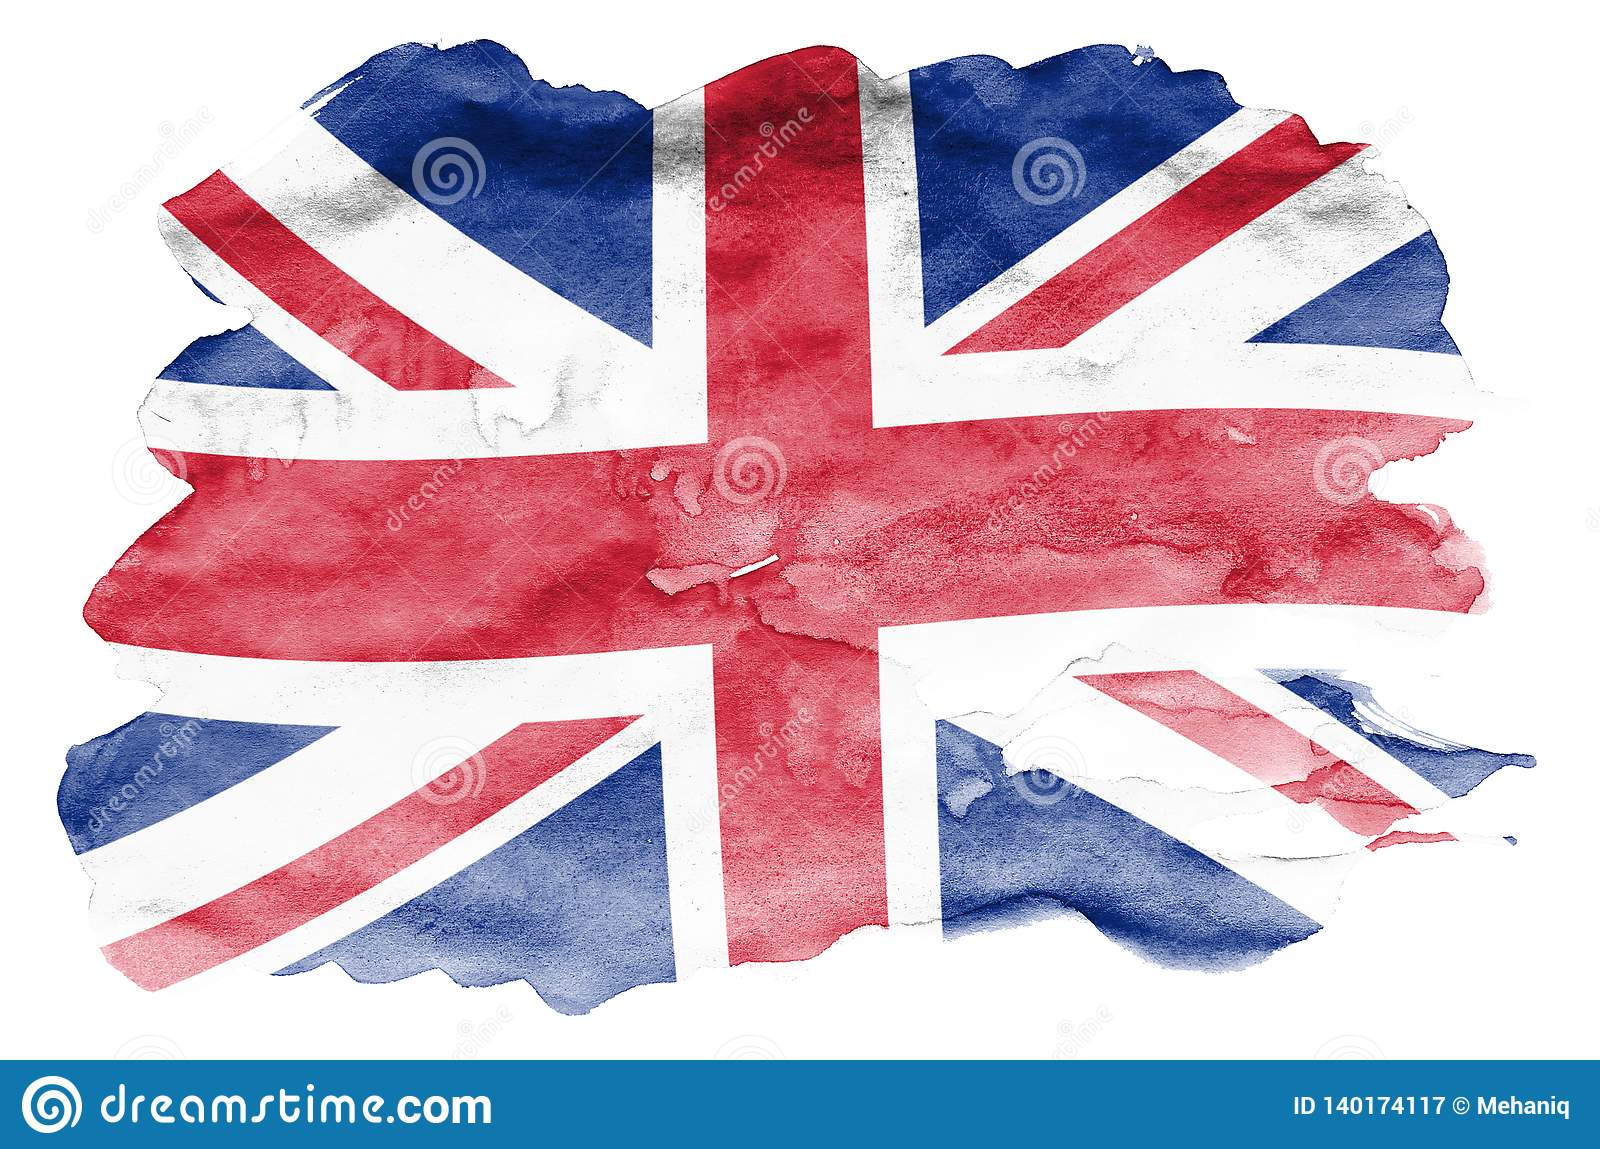 Great britain flag is depicted in liquid watercolor style isolated on white background